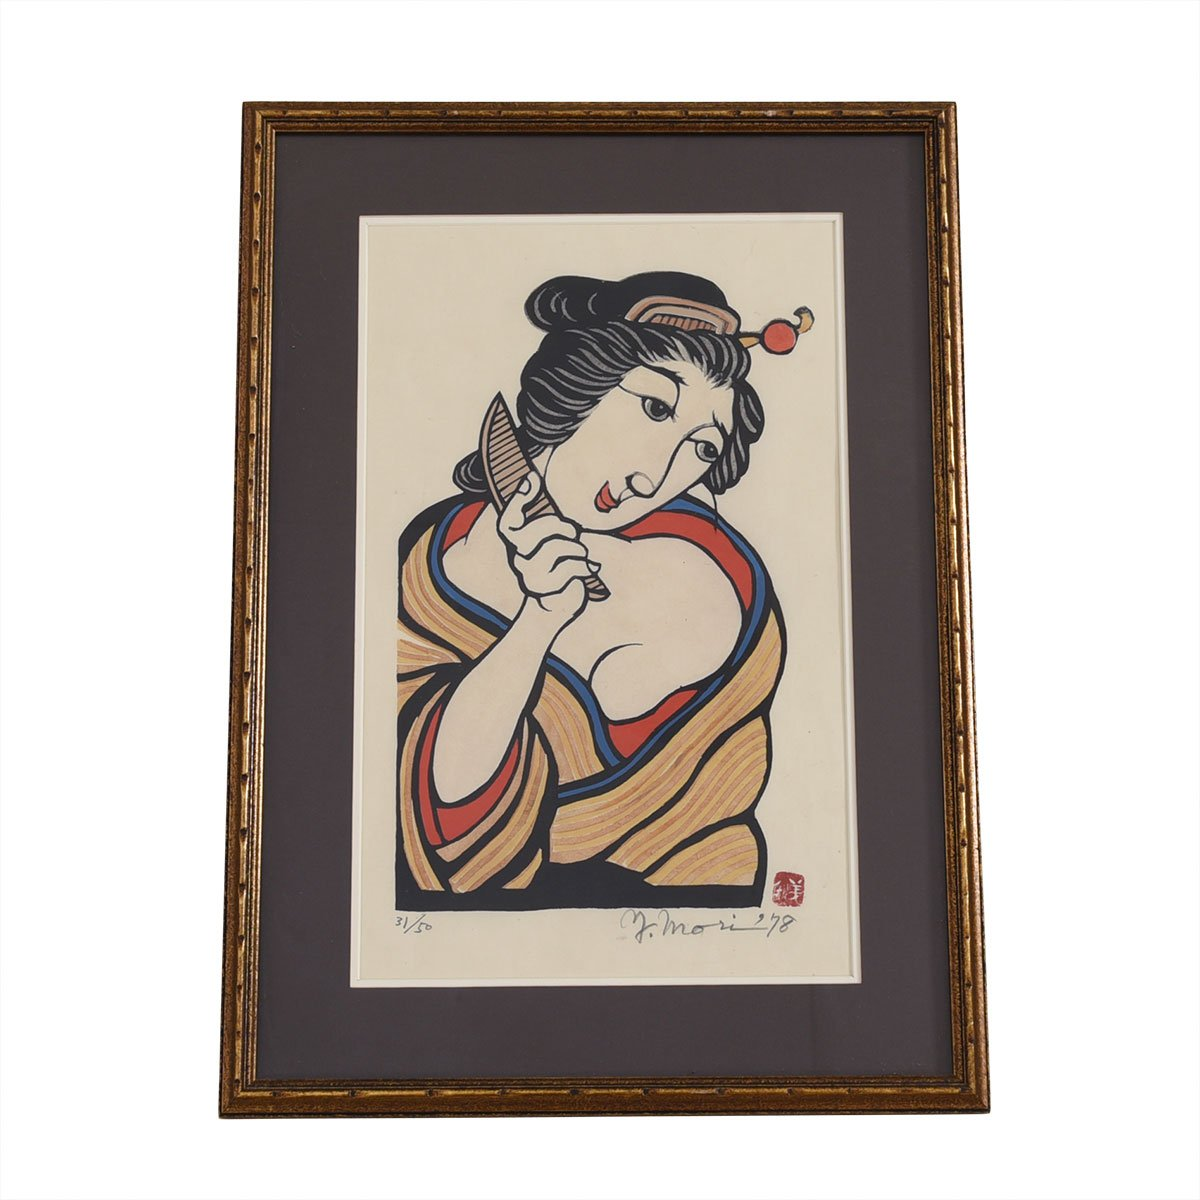 Yoshitoshi Mori Japanese Wood Block Print, Woman with Comb